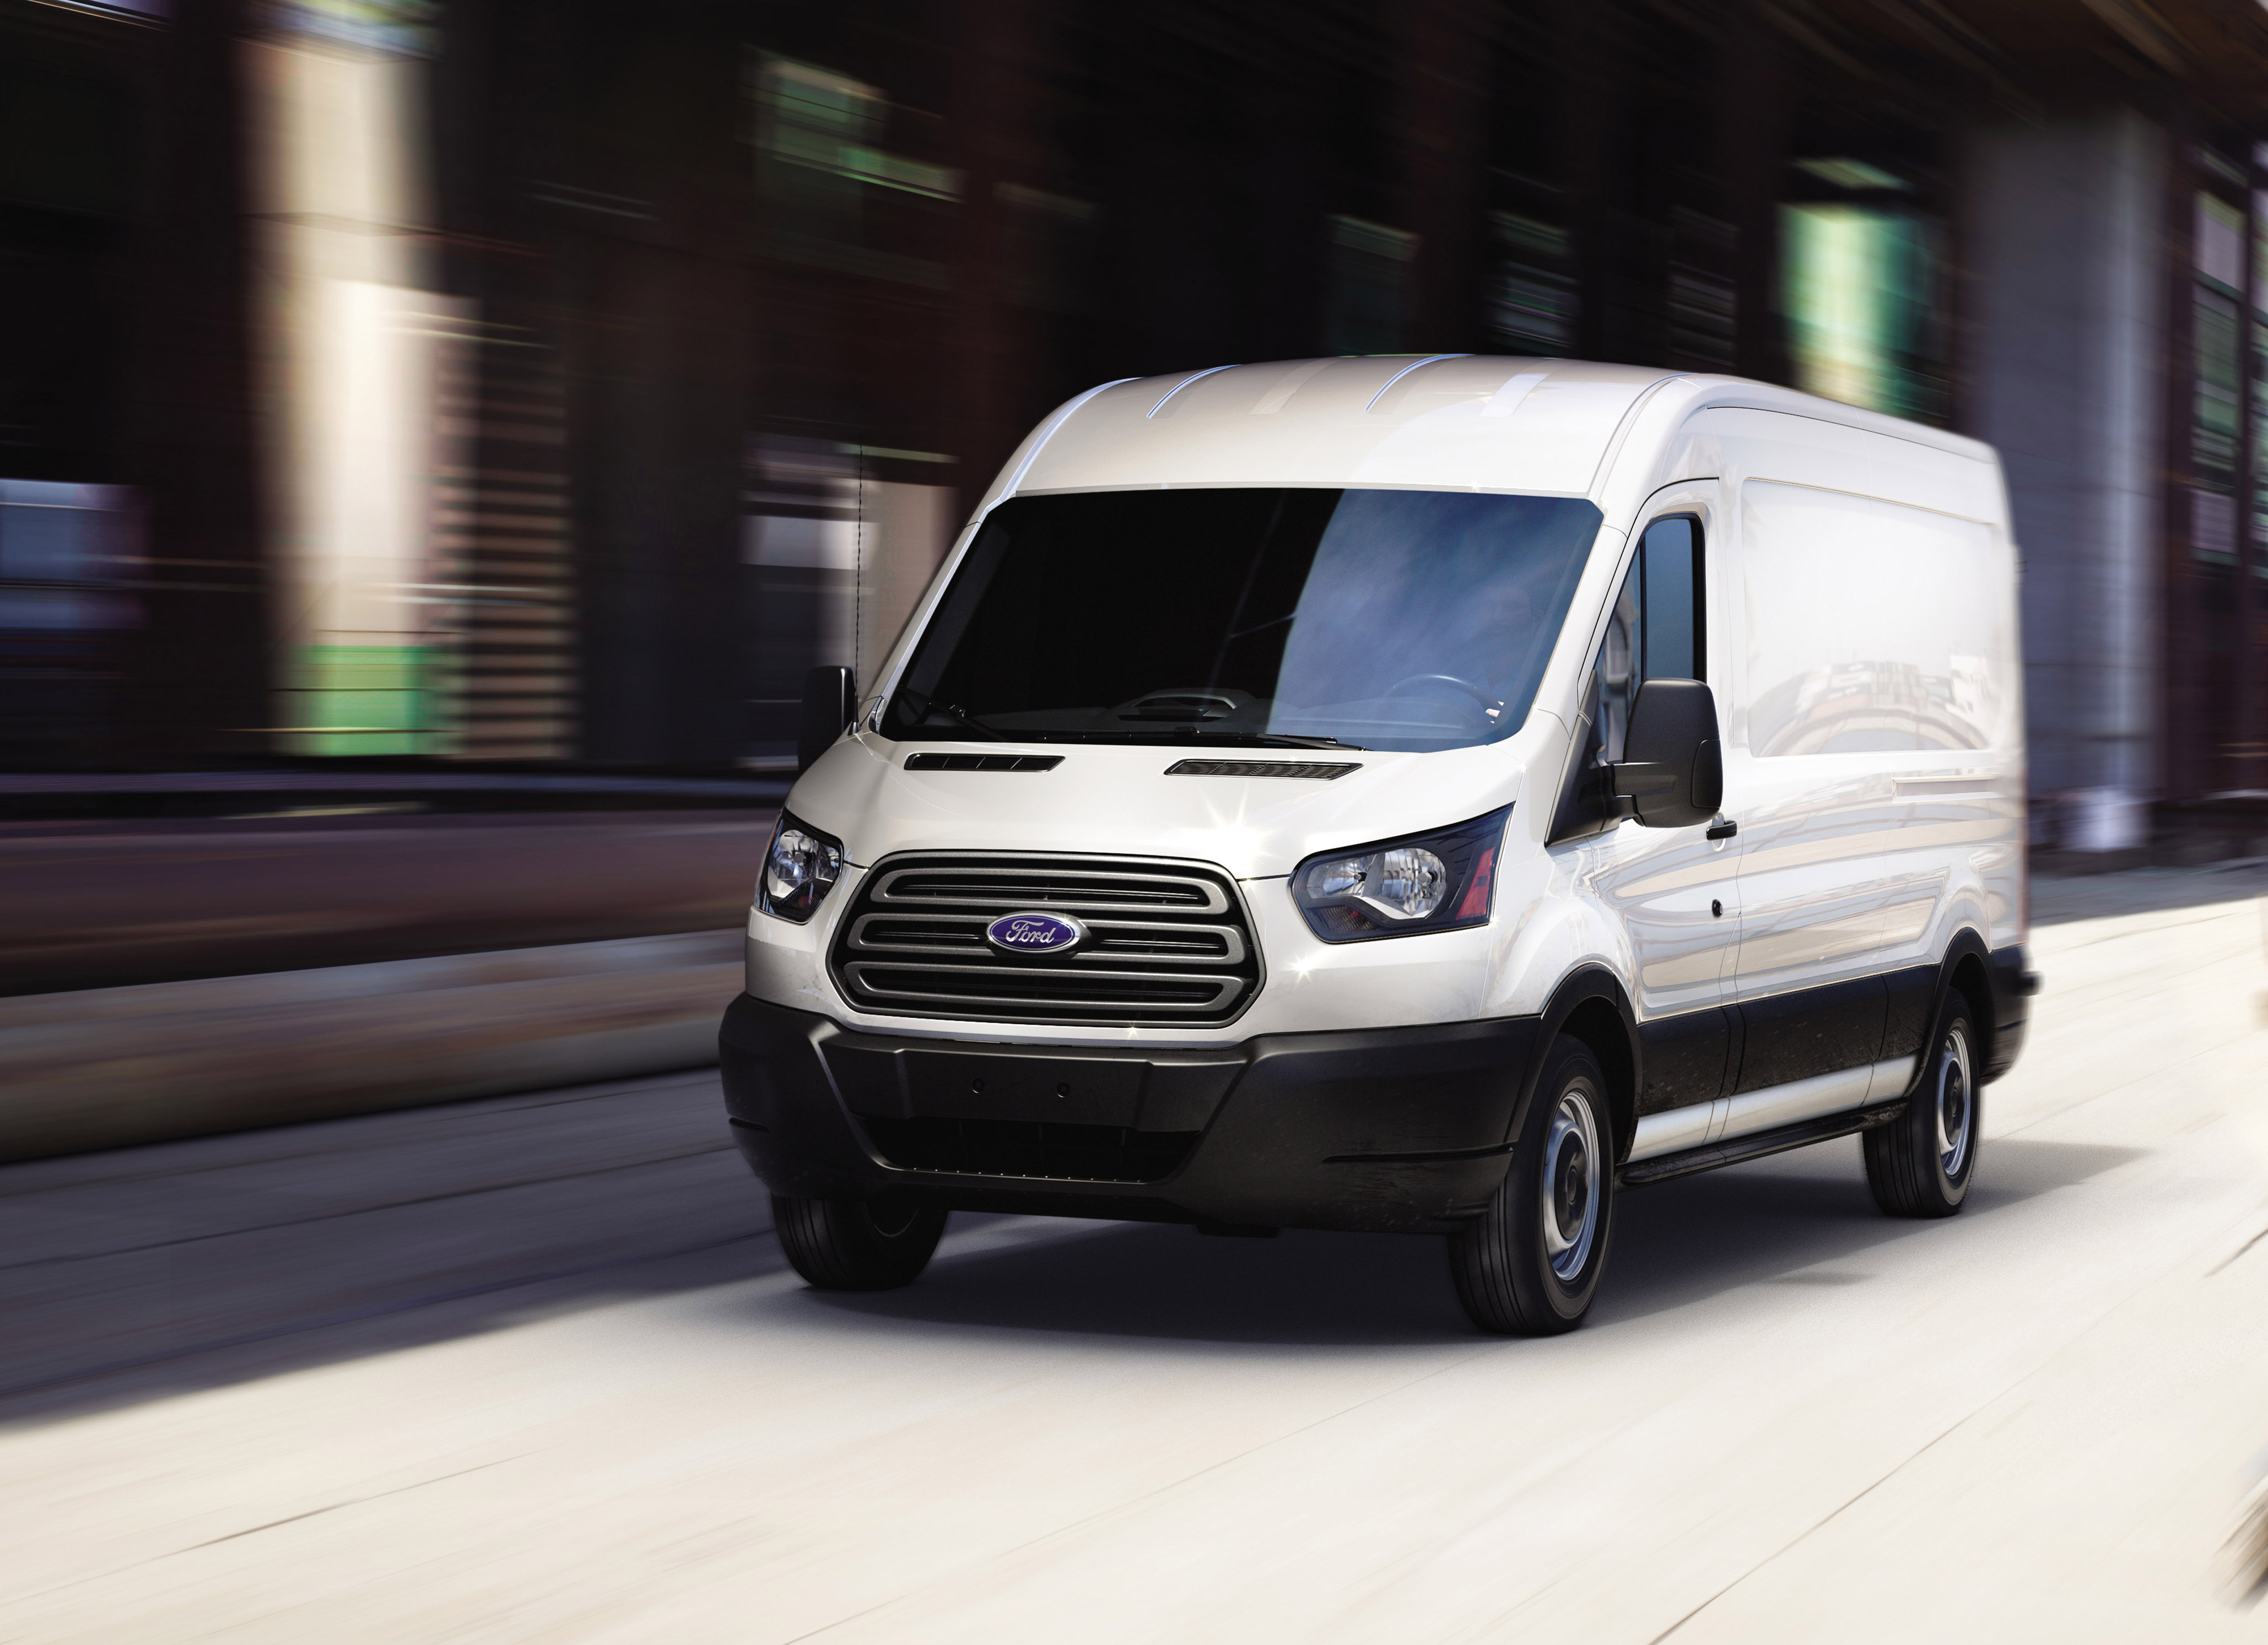 Used Fleet Cargo Vans For Sale >> Cable TV's Charter Orders 800+ Ford Transit Vans – TechCentury